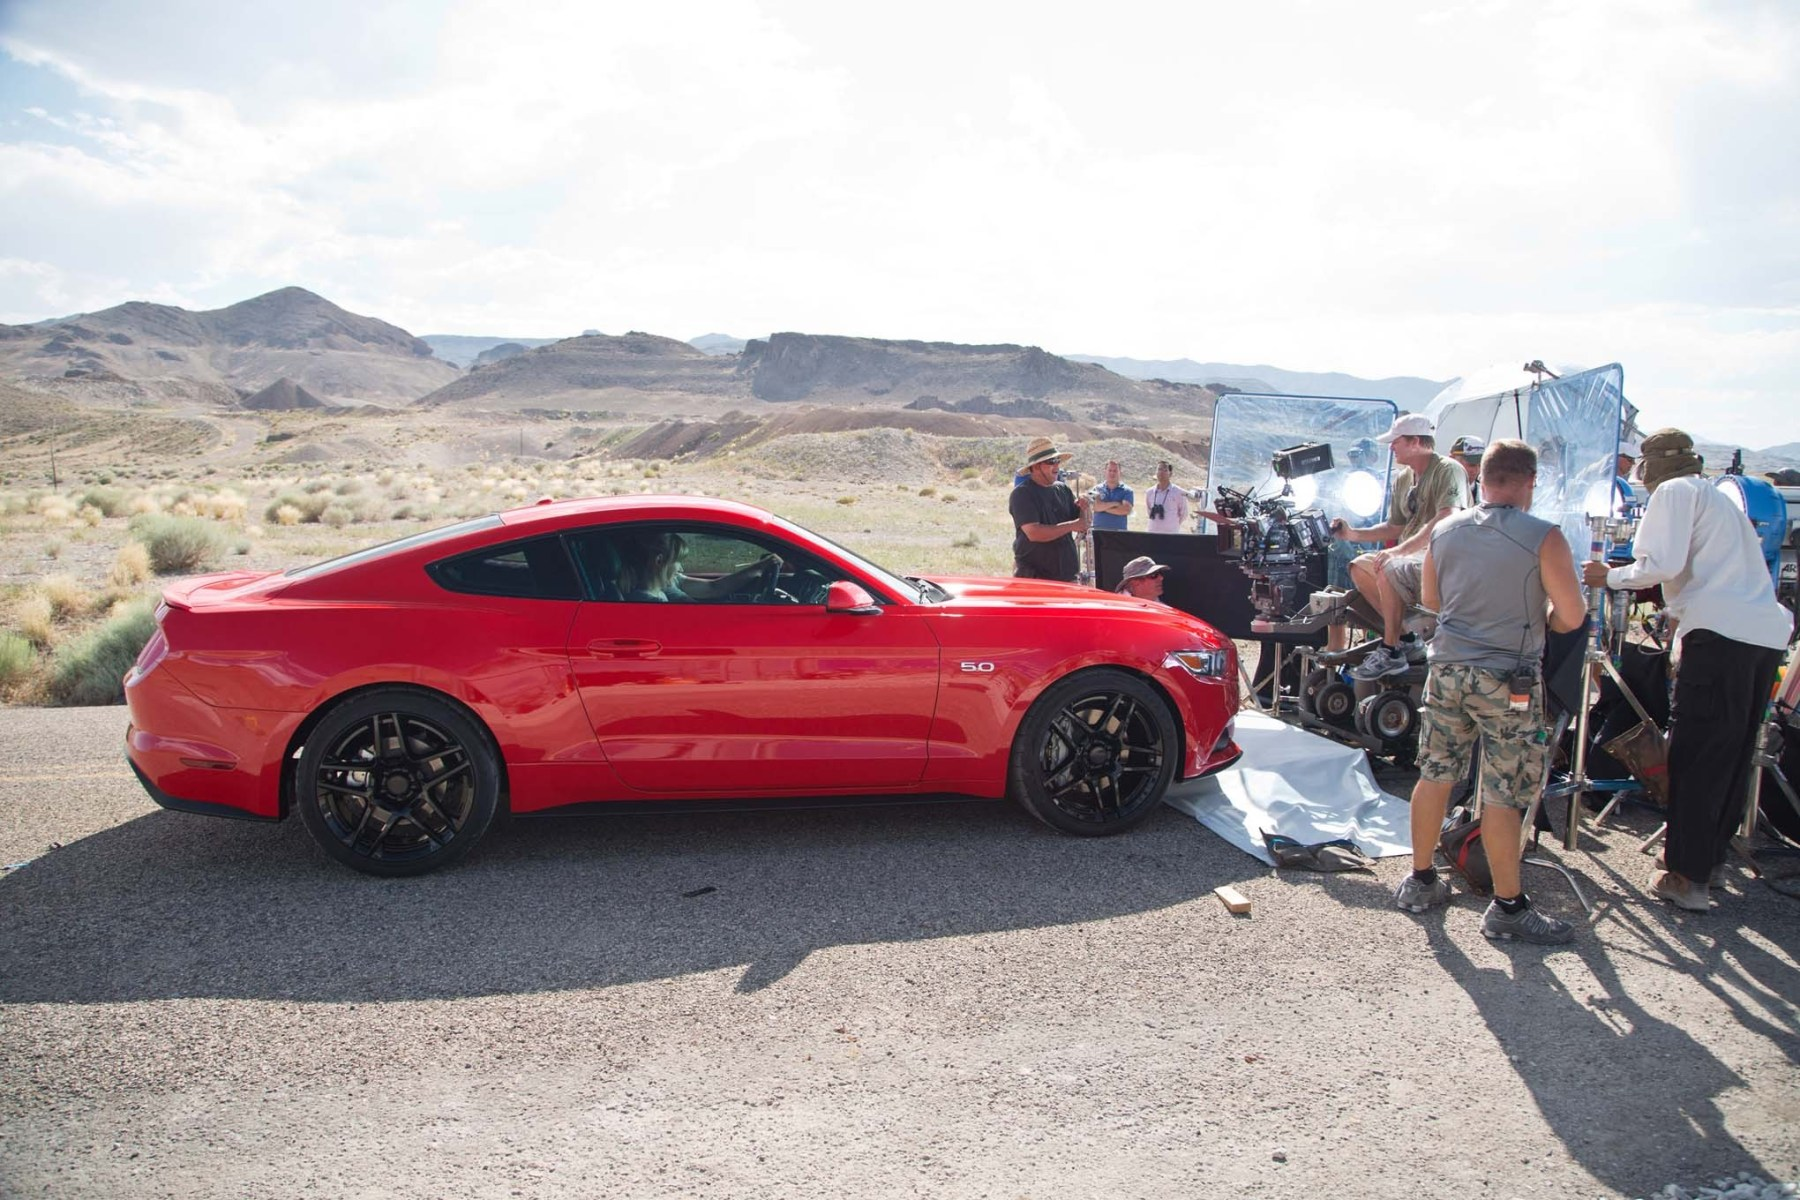 On Location : Need for Speed (2014) Behind the Scenes